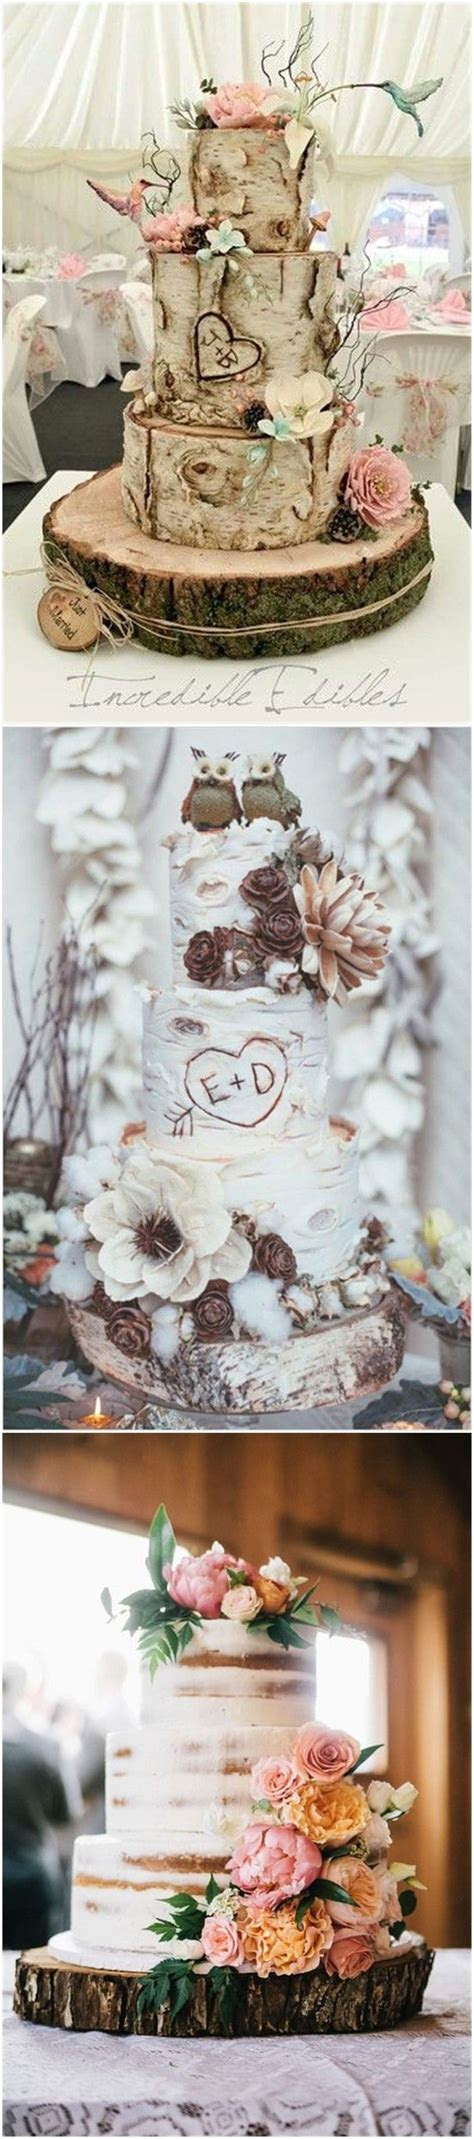 country wedding cakes ideas  pinterest